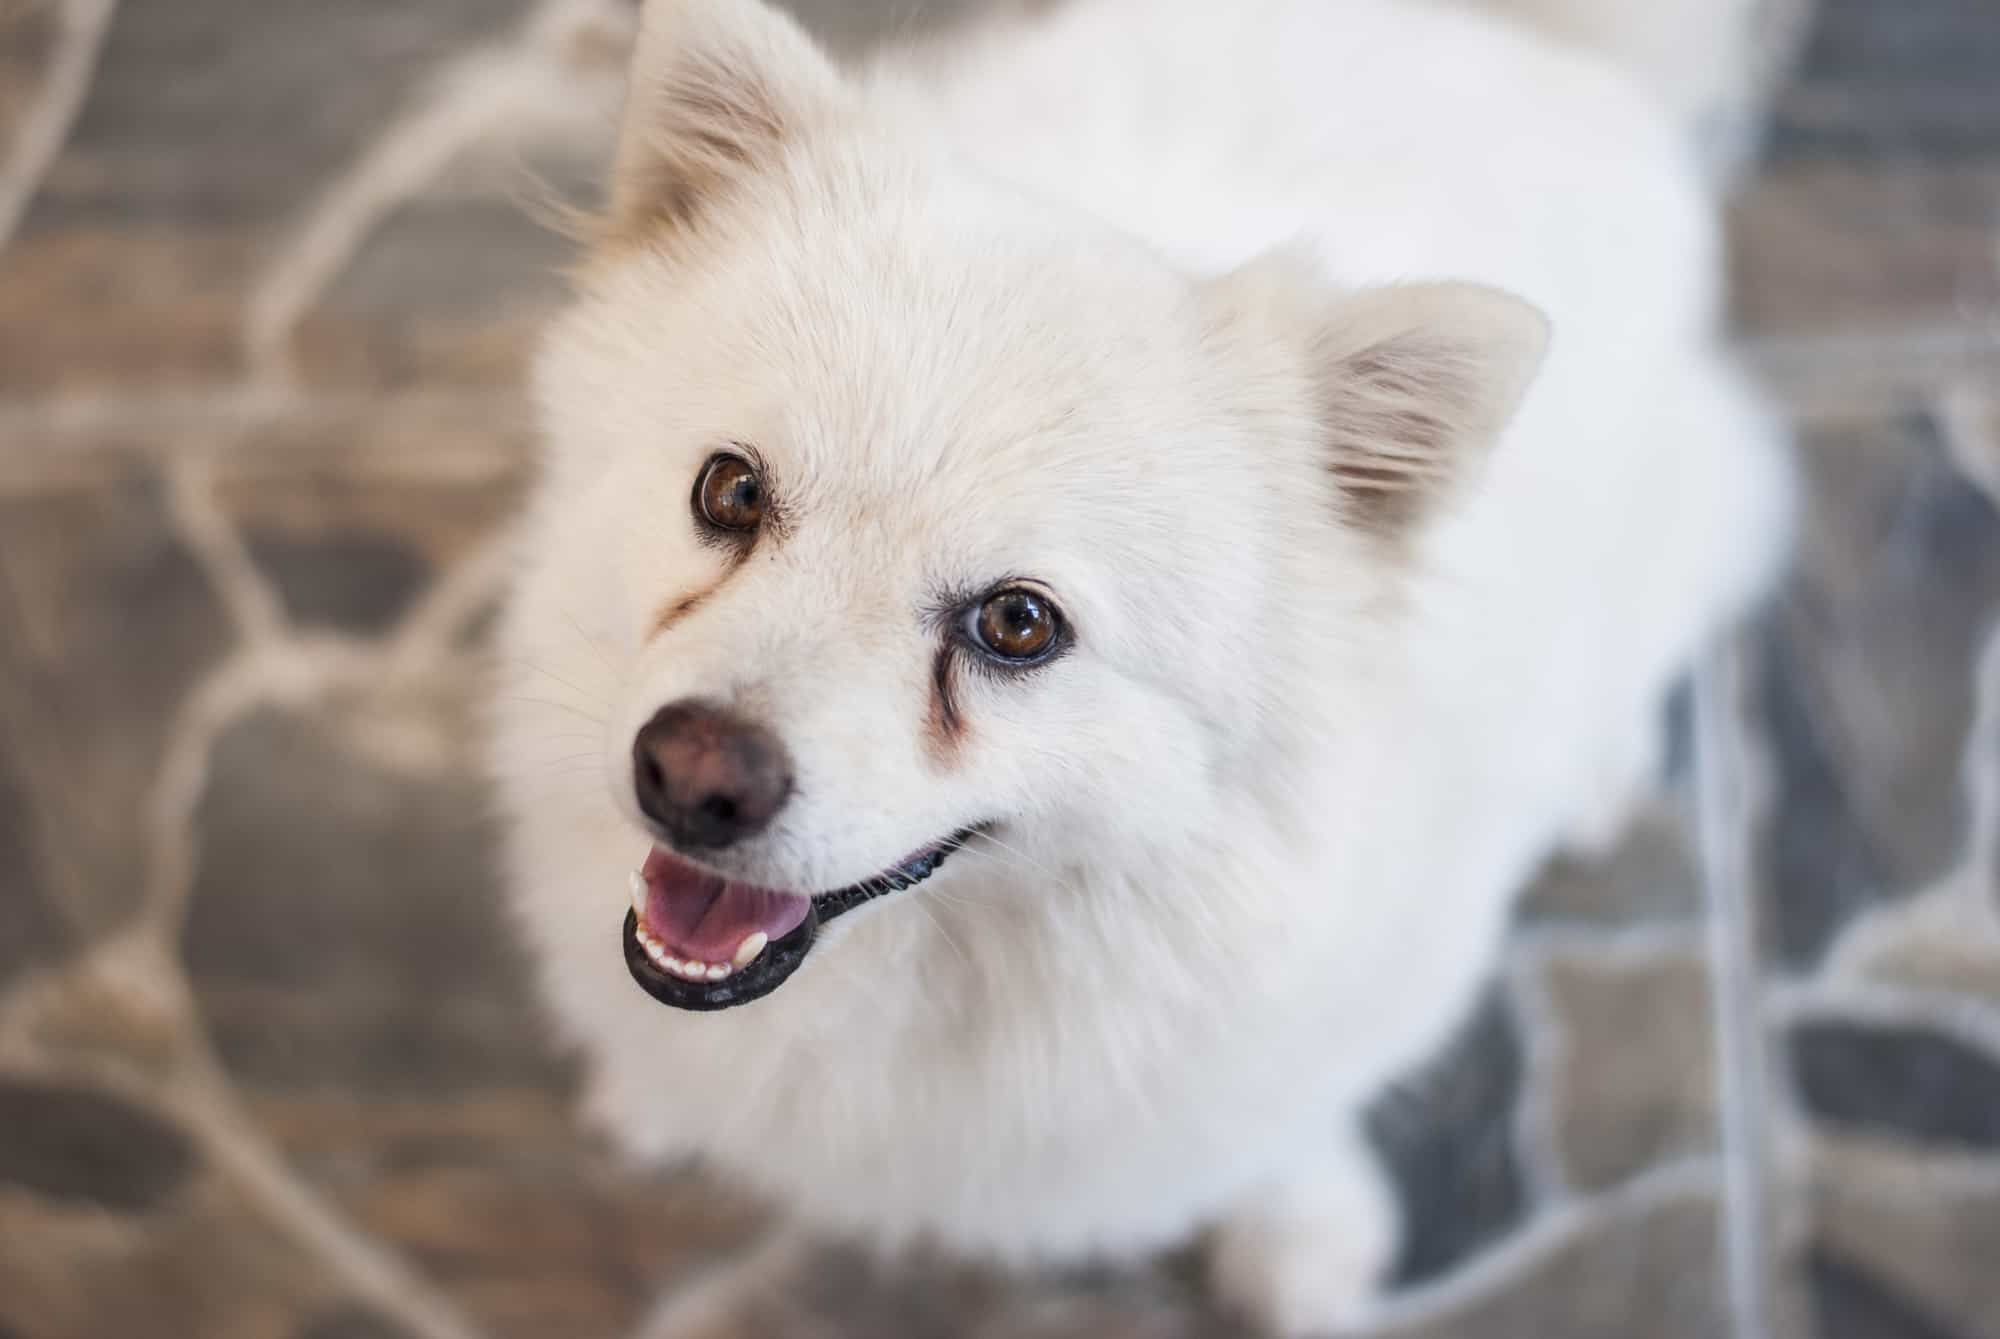 Dry Dog Food For Senior Dogs With Bad Teeth